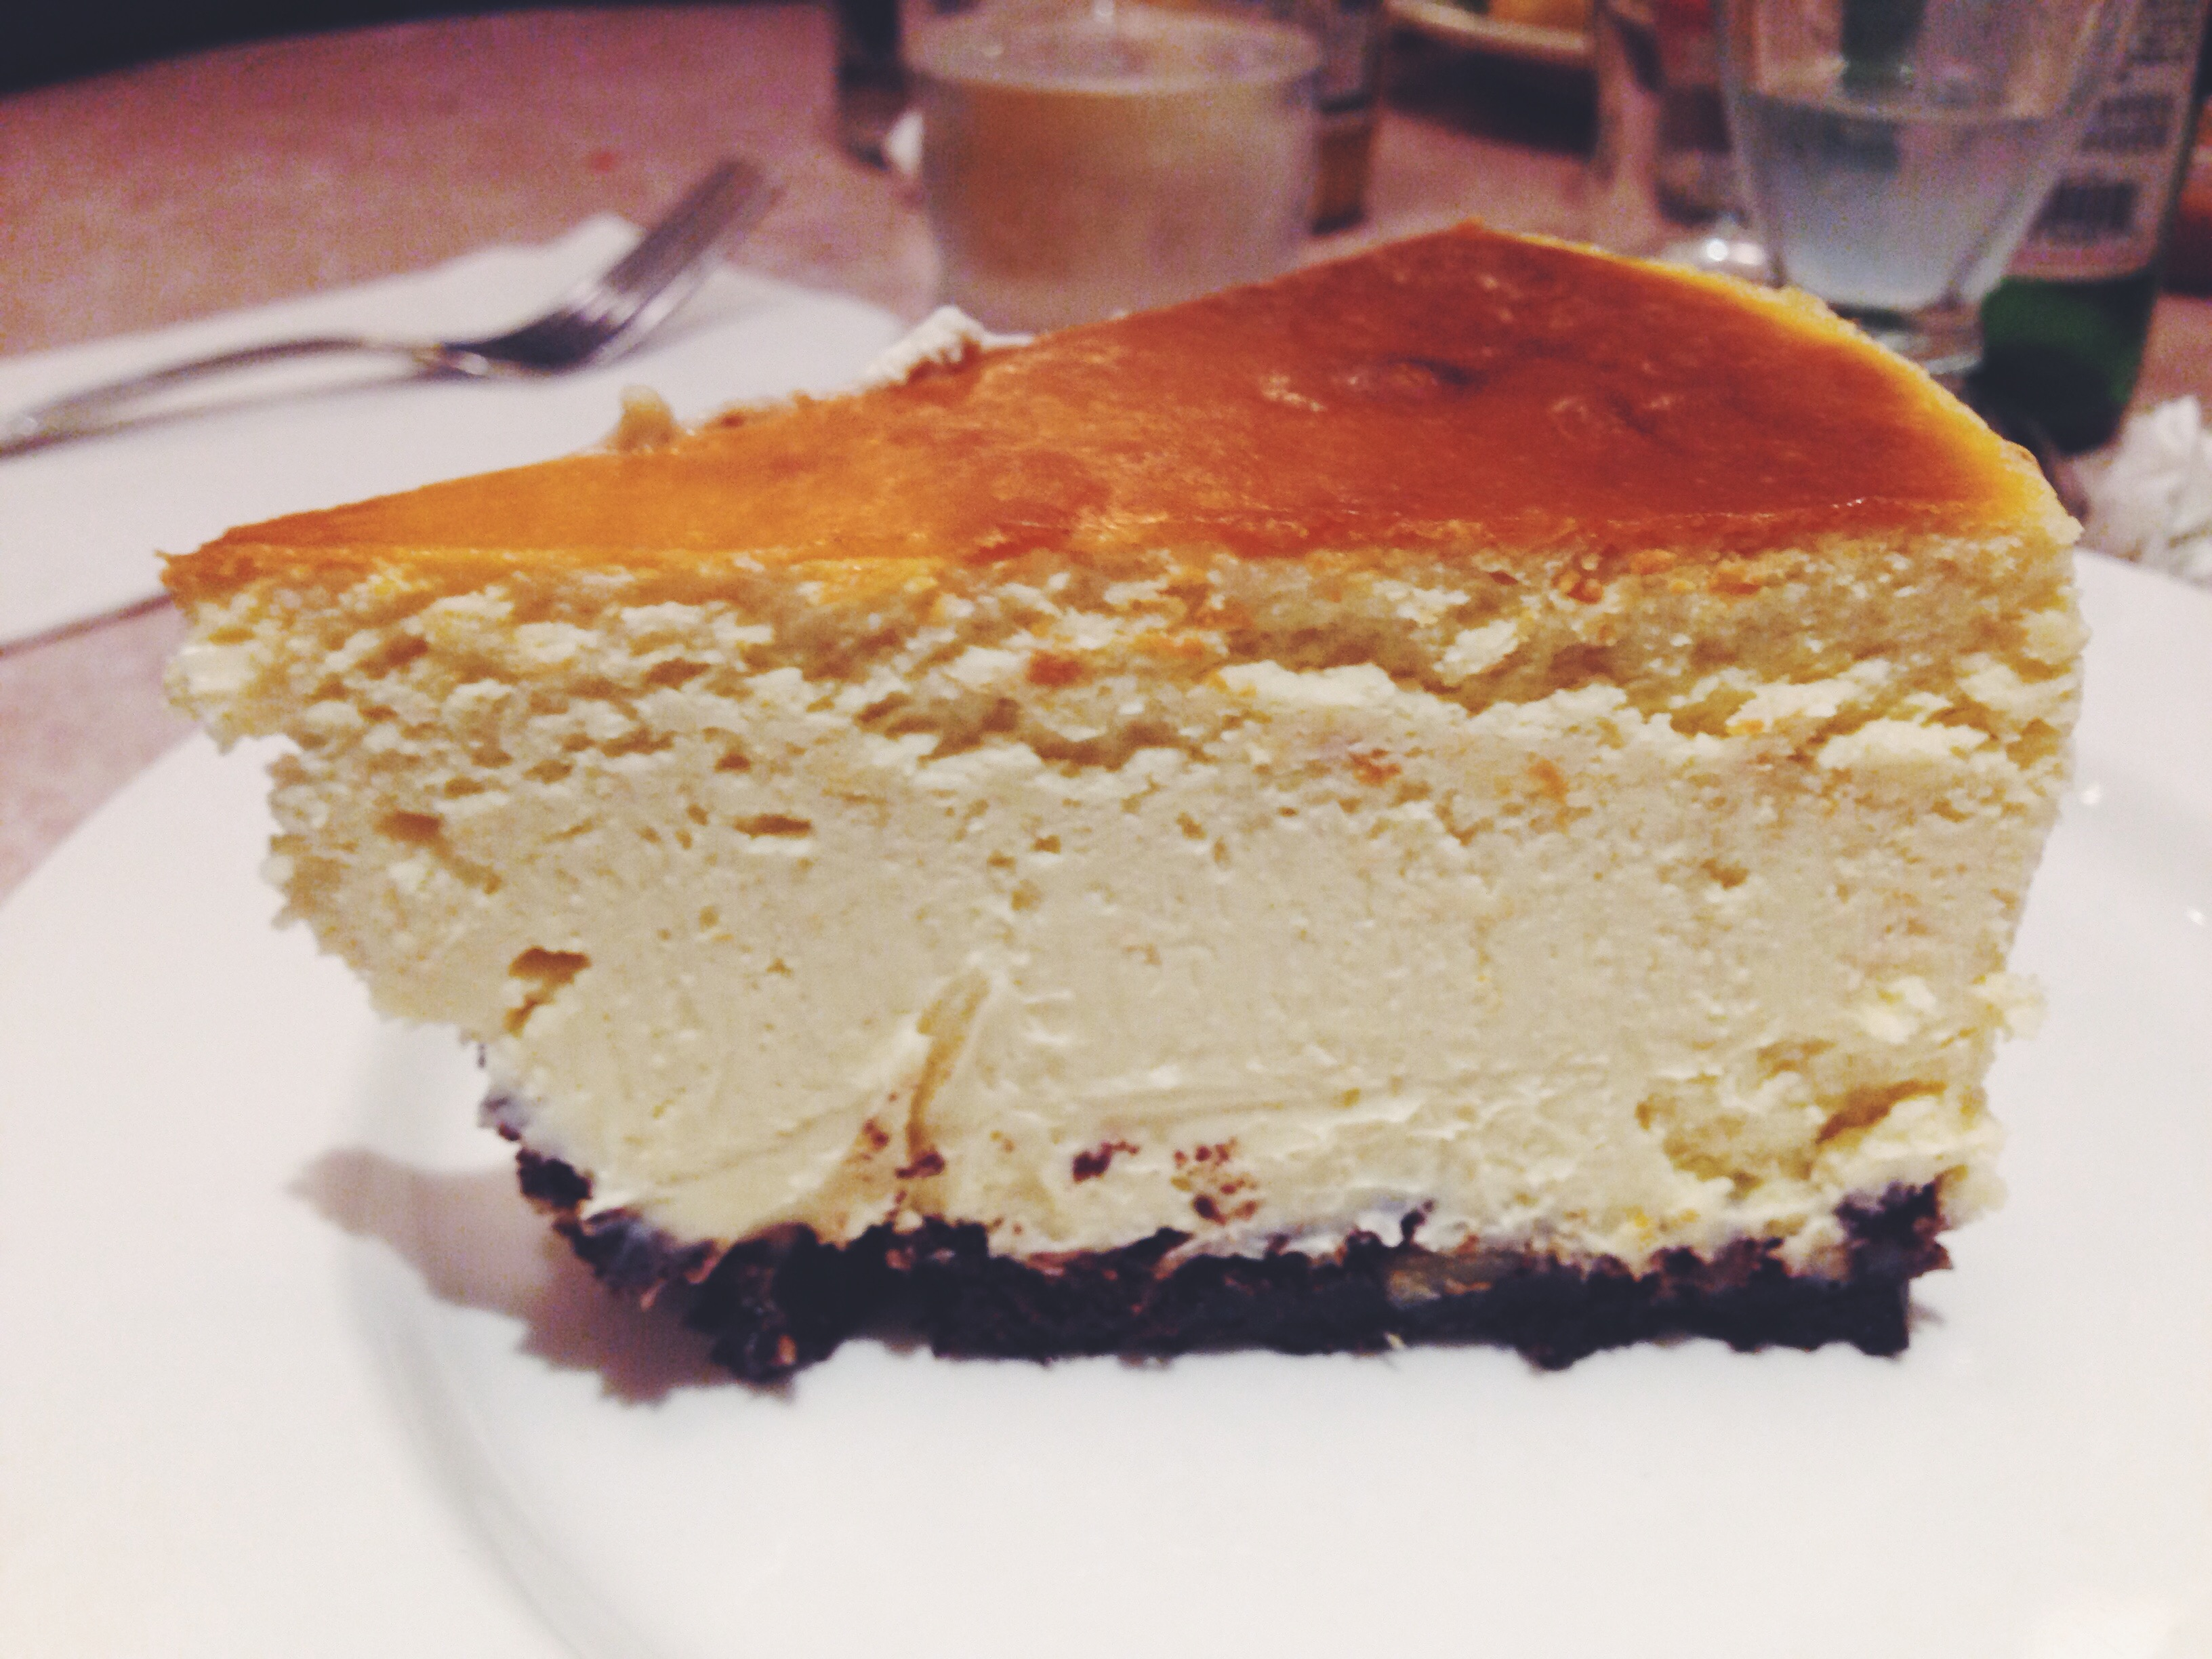 new-york-cheese-cake-in-creamery-plao-alto